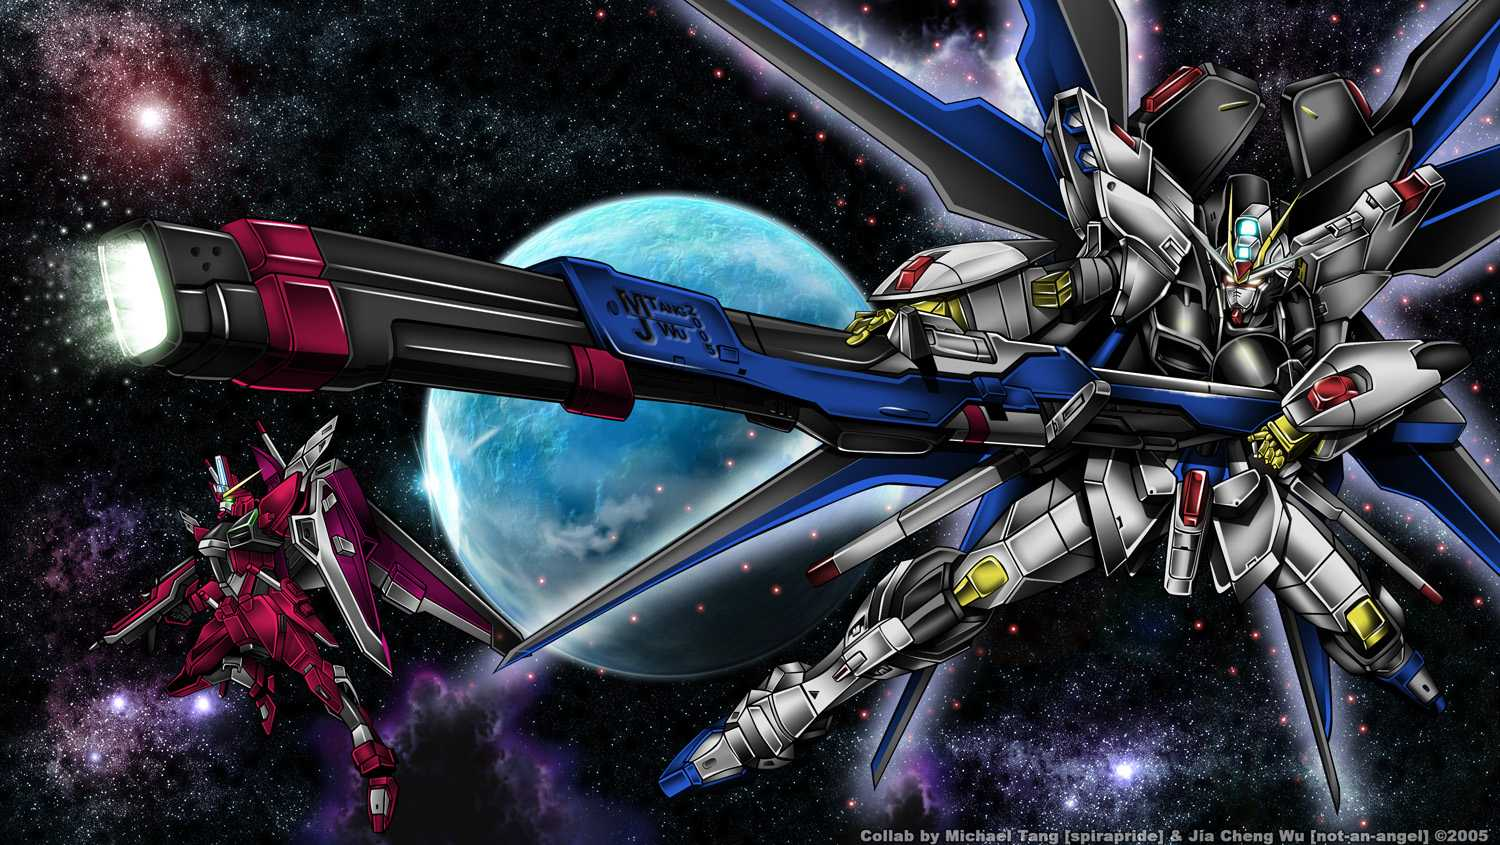 1500x845 - Mobile Suit Gundam Seed Destiny Wallpapers 3